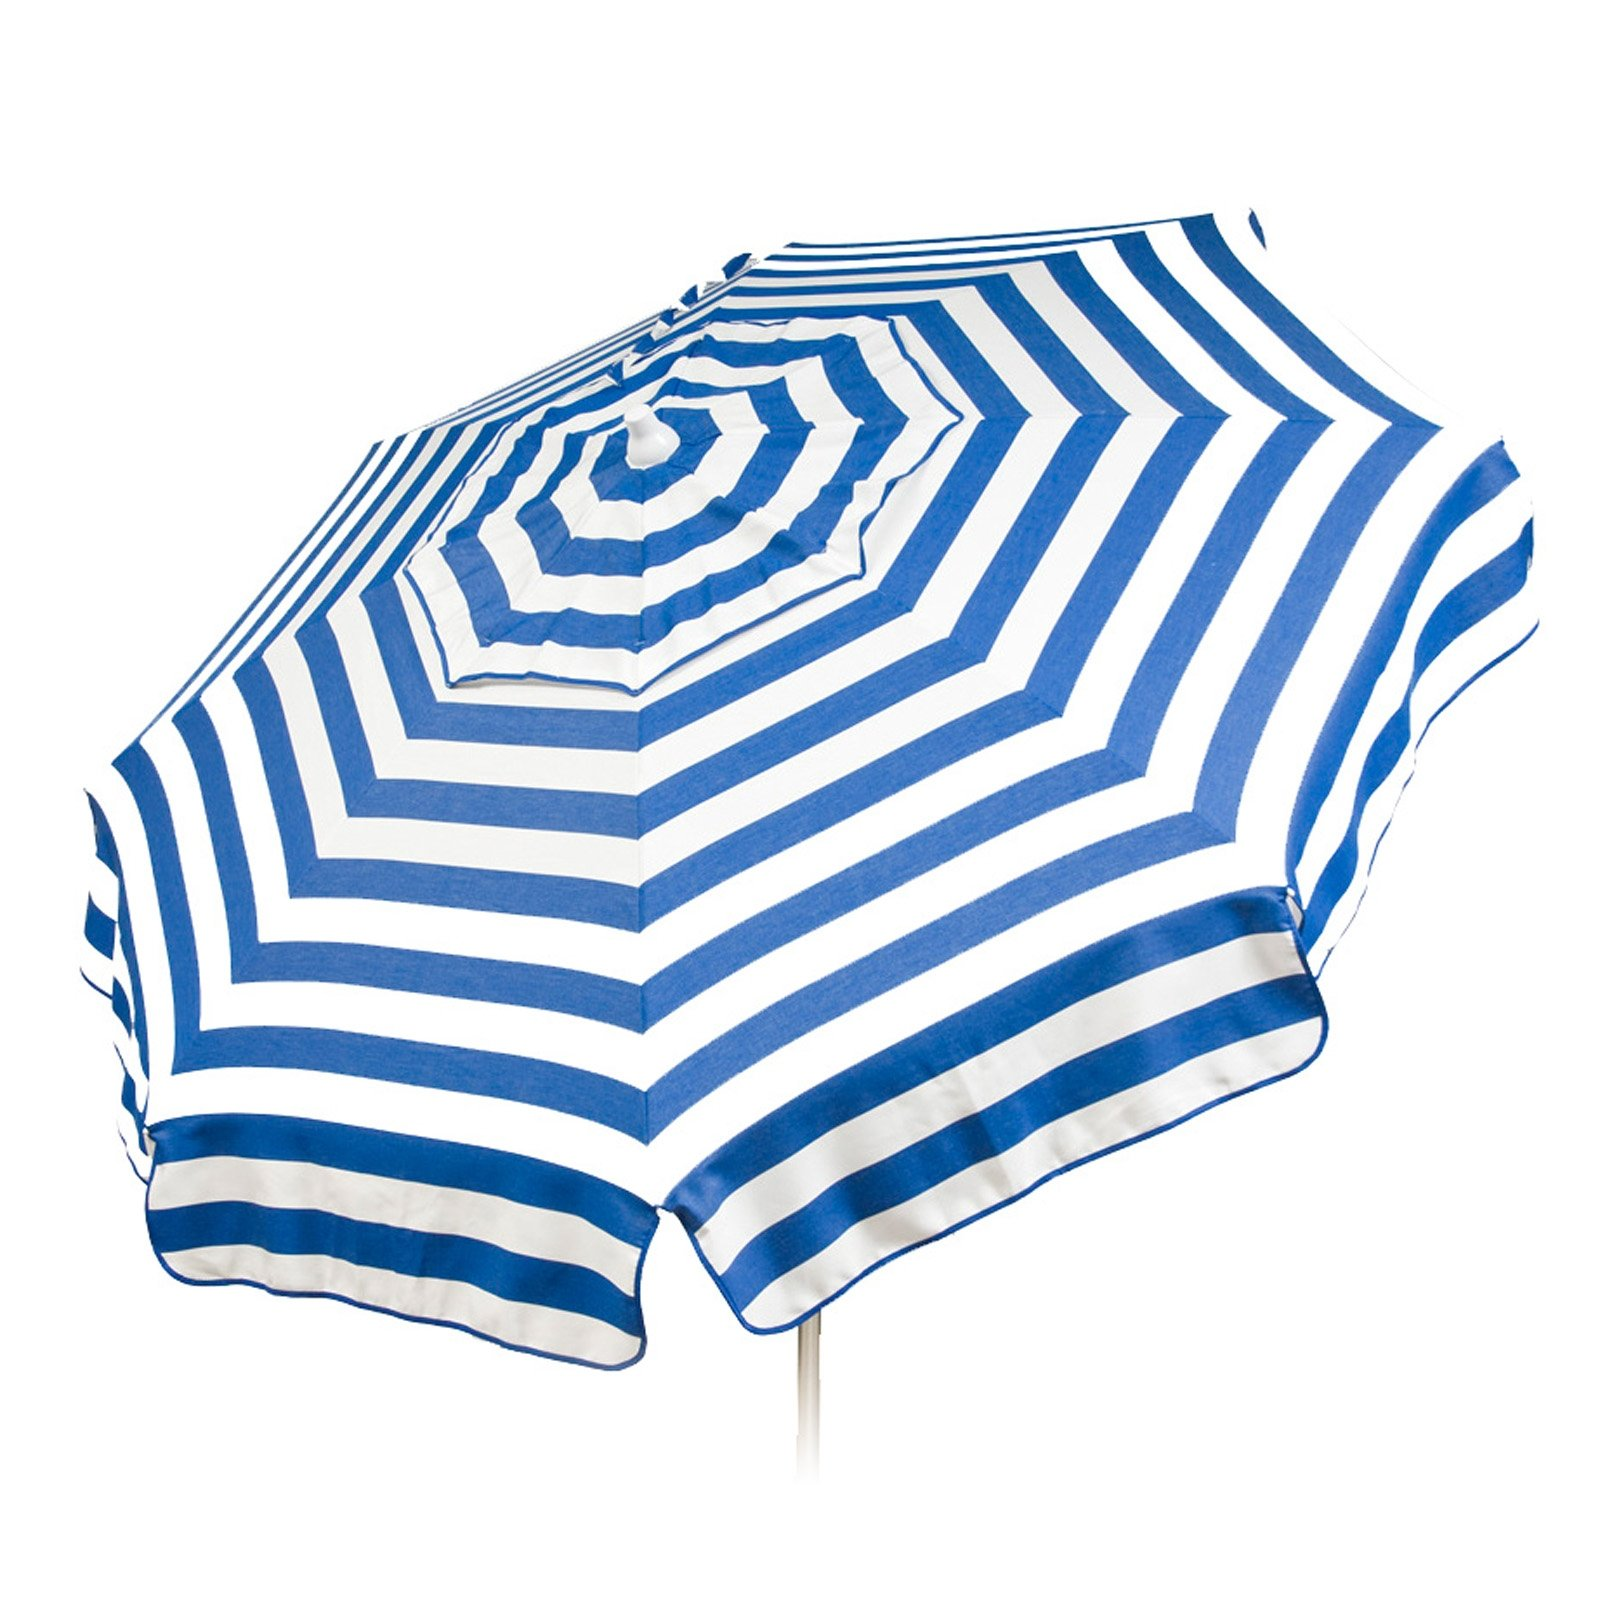 Italian 6 foot Push/Tilt Umbrella Acrylic Stripes Blue and White - Bar Pole